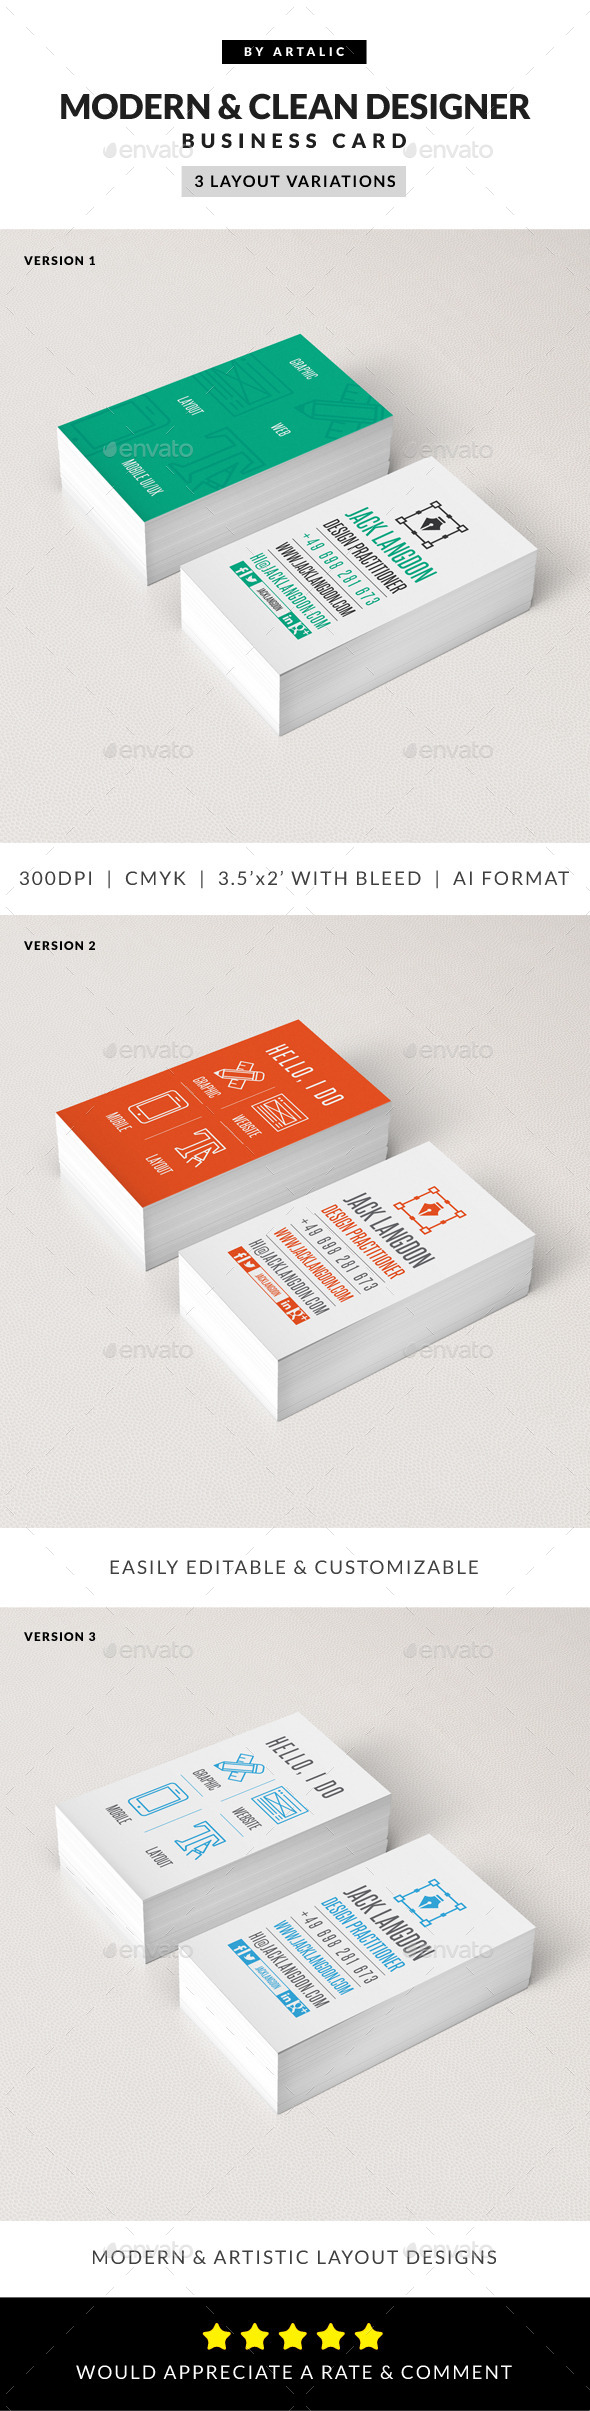 Creative & Modern Iconic Business Card - Creative Business Cards